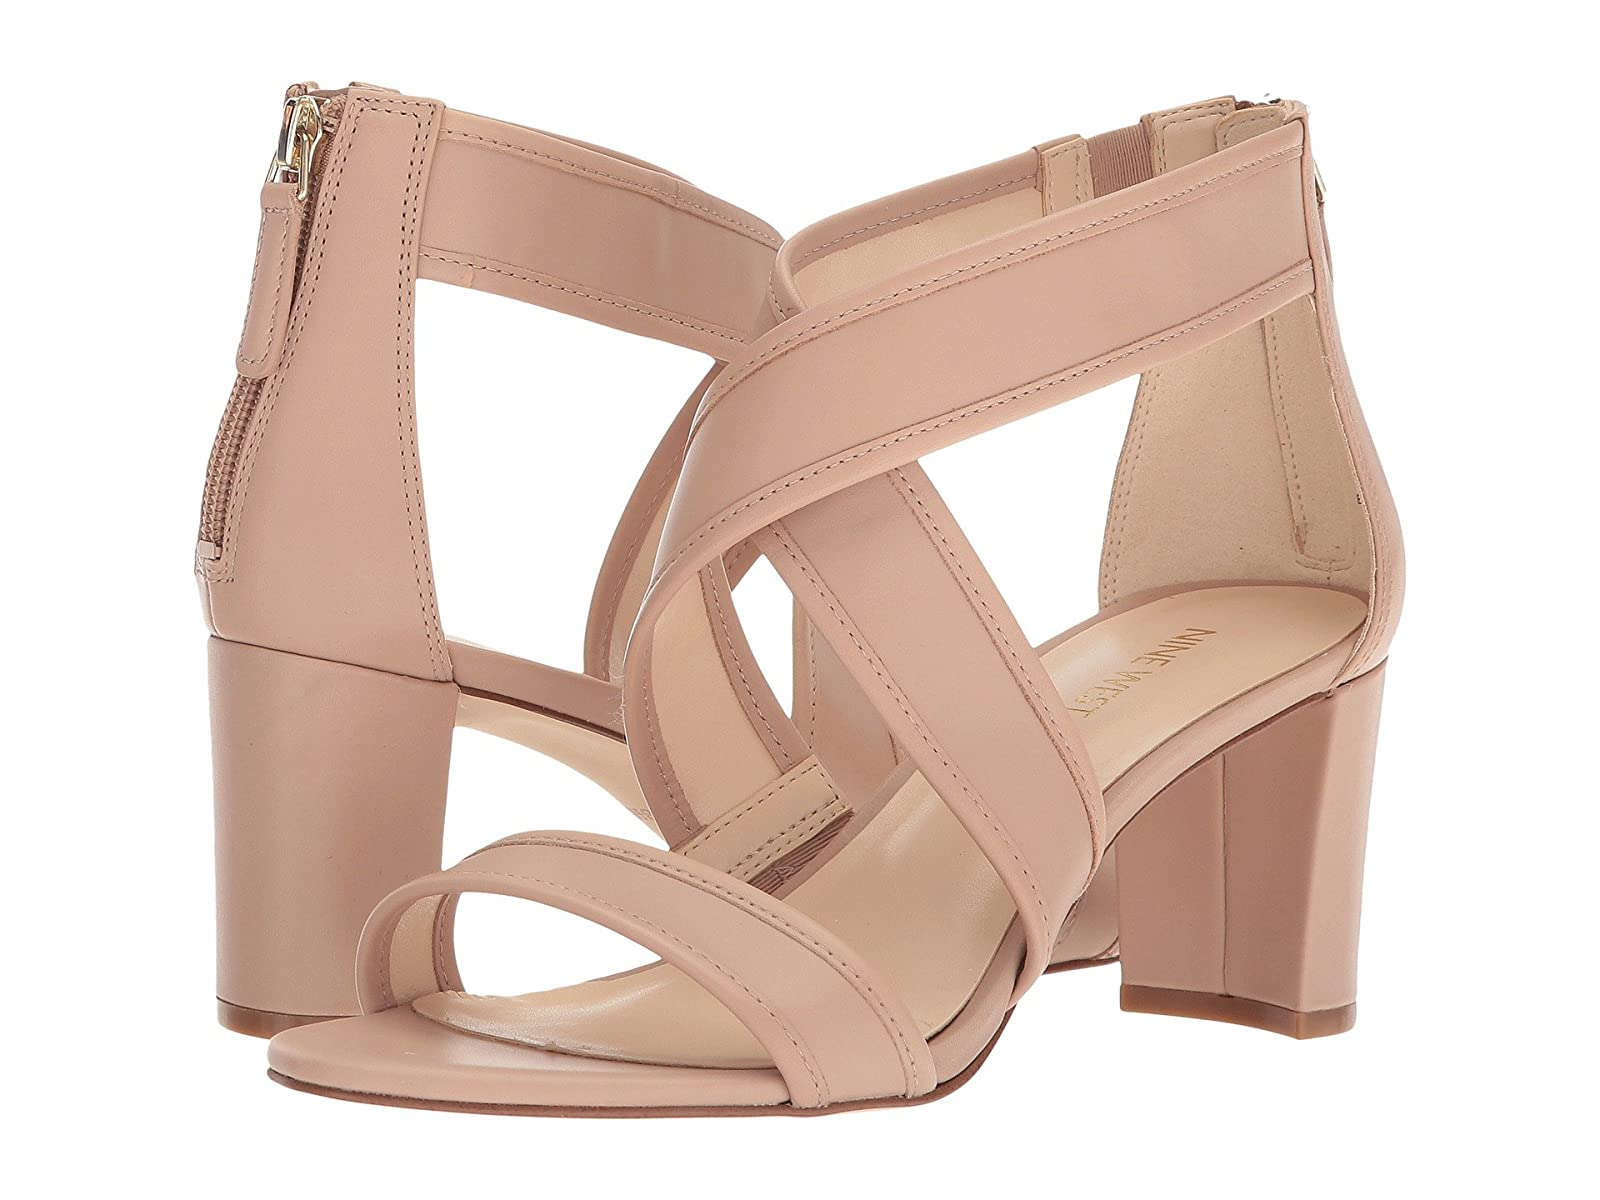 Nine West Pearlita Block Heel SandalCheap and distinctive eye-catching shoes